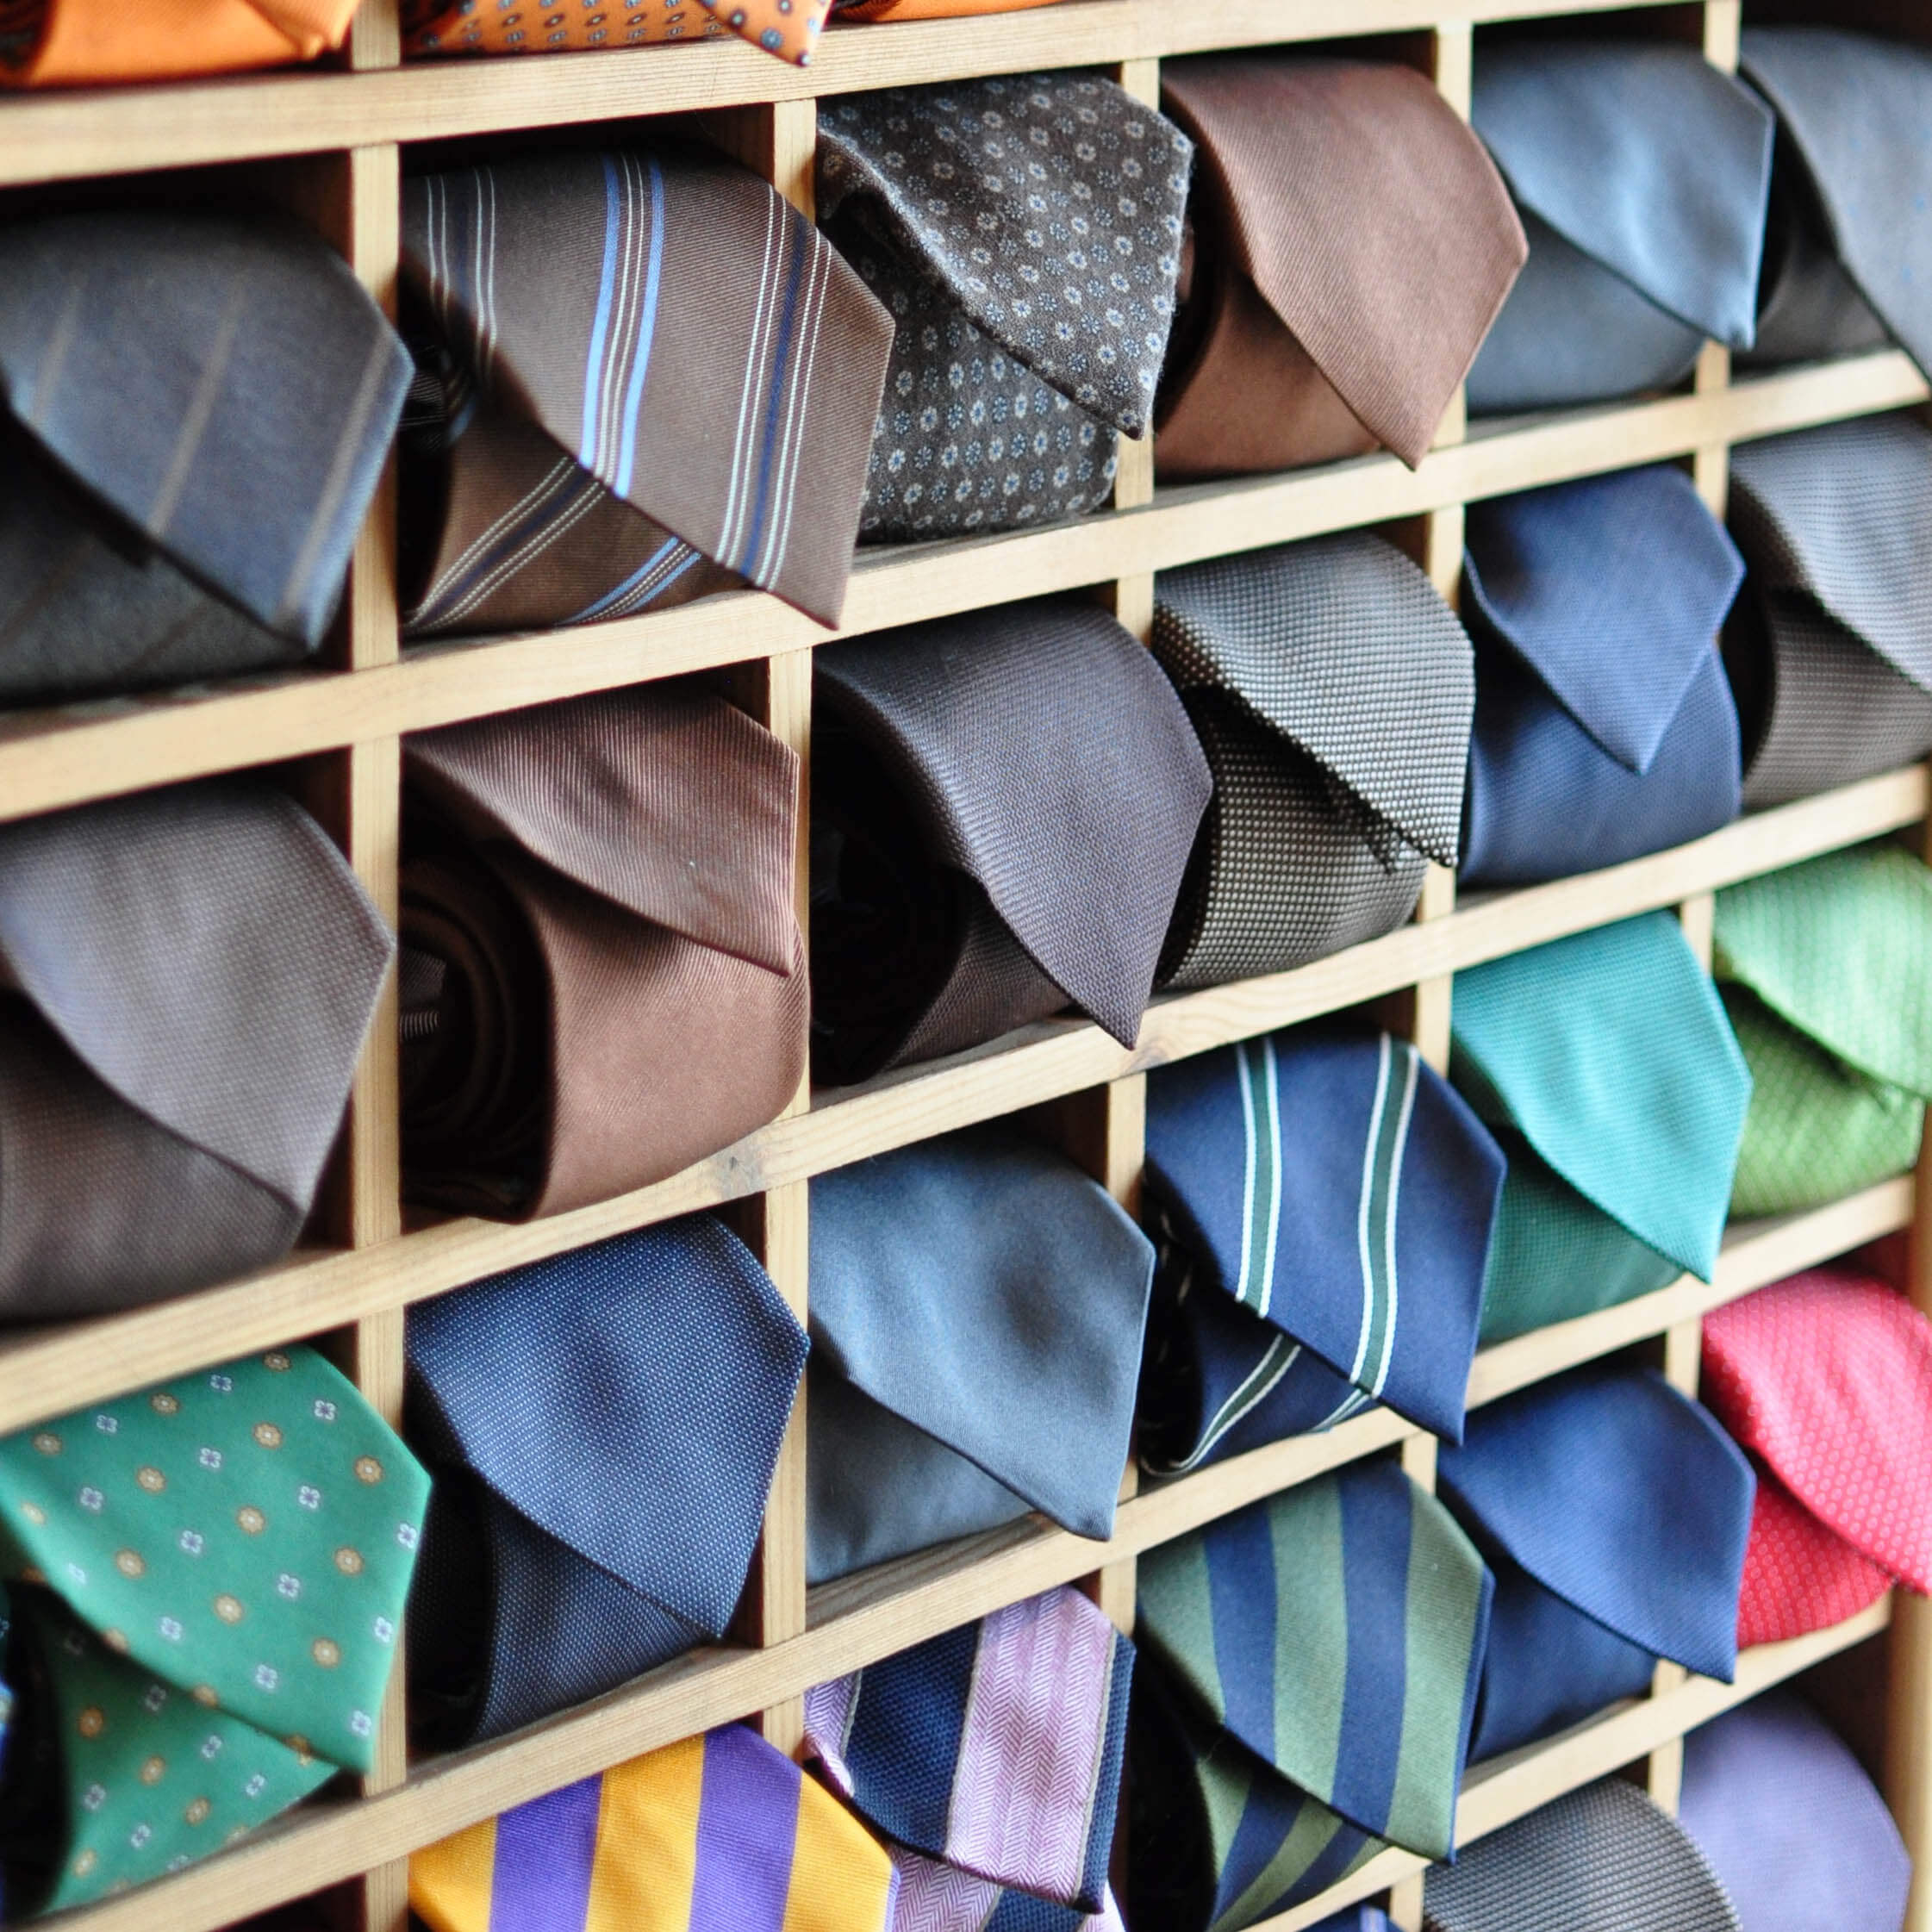 Tie Display in the Harrogate Shop